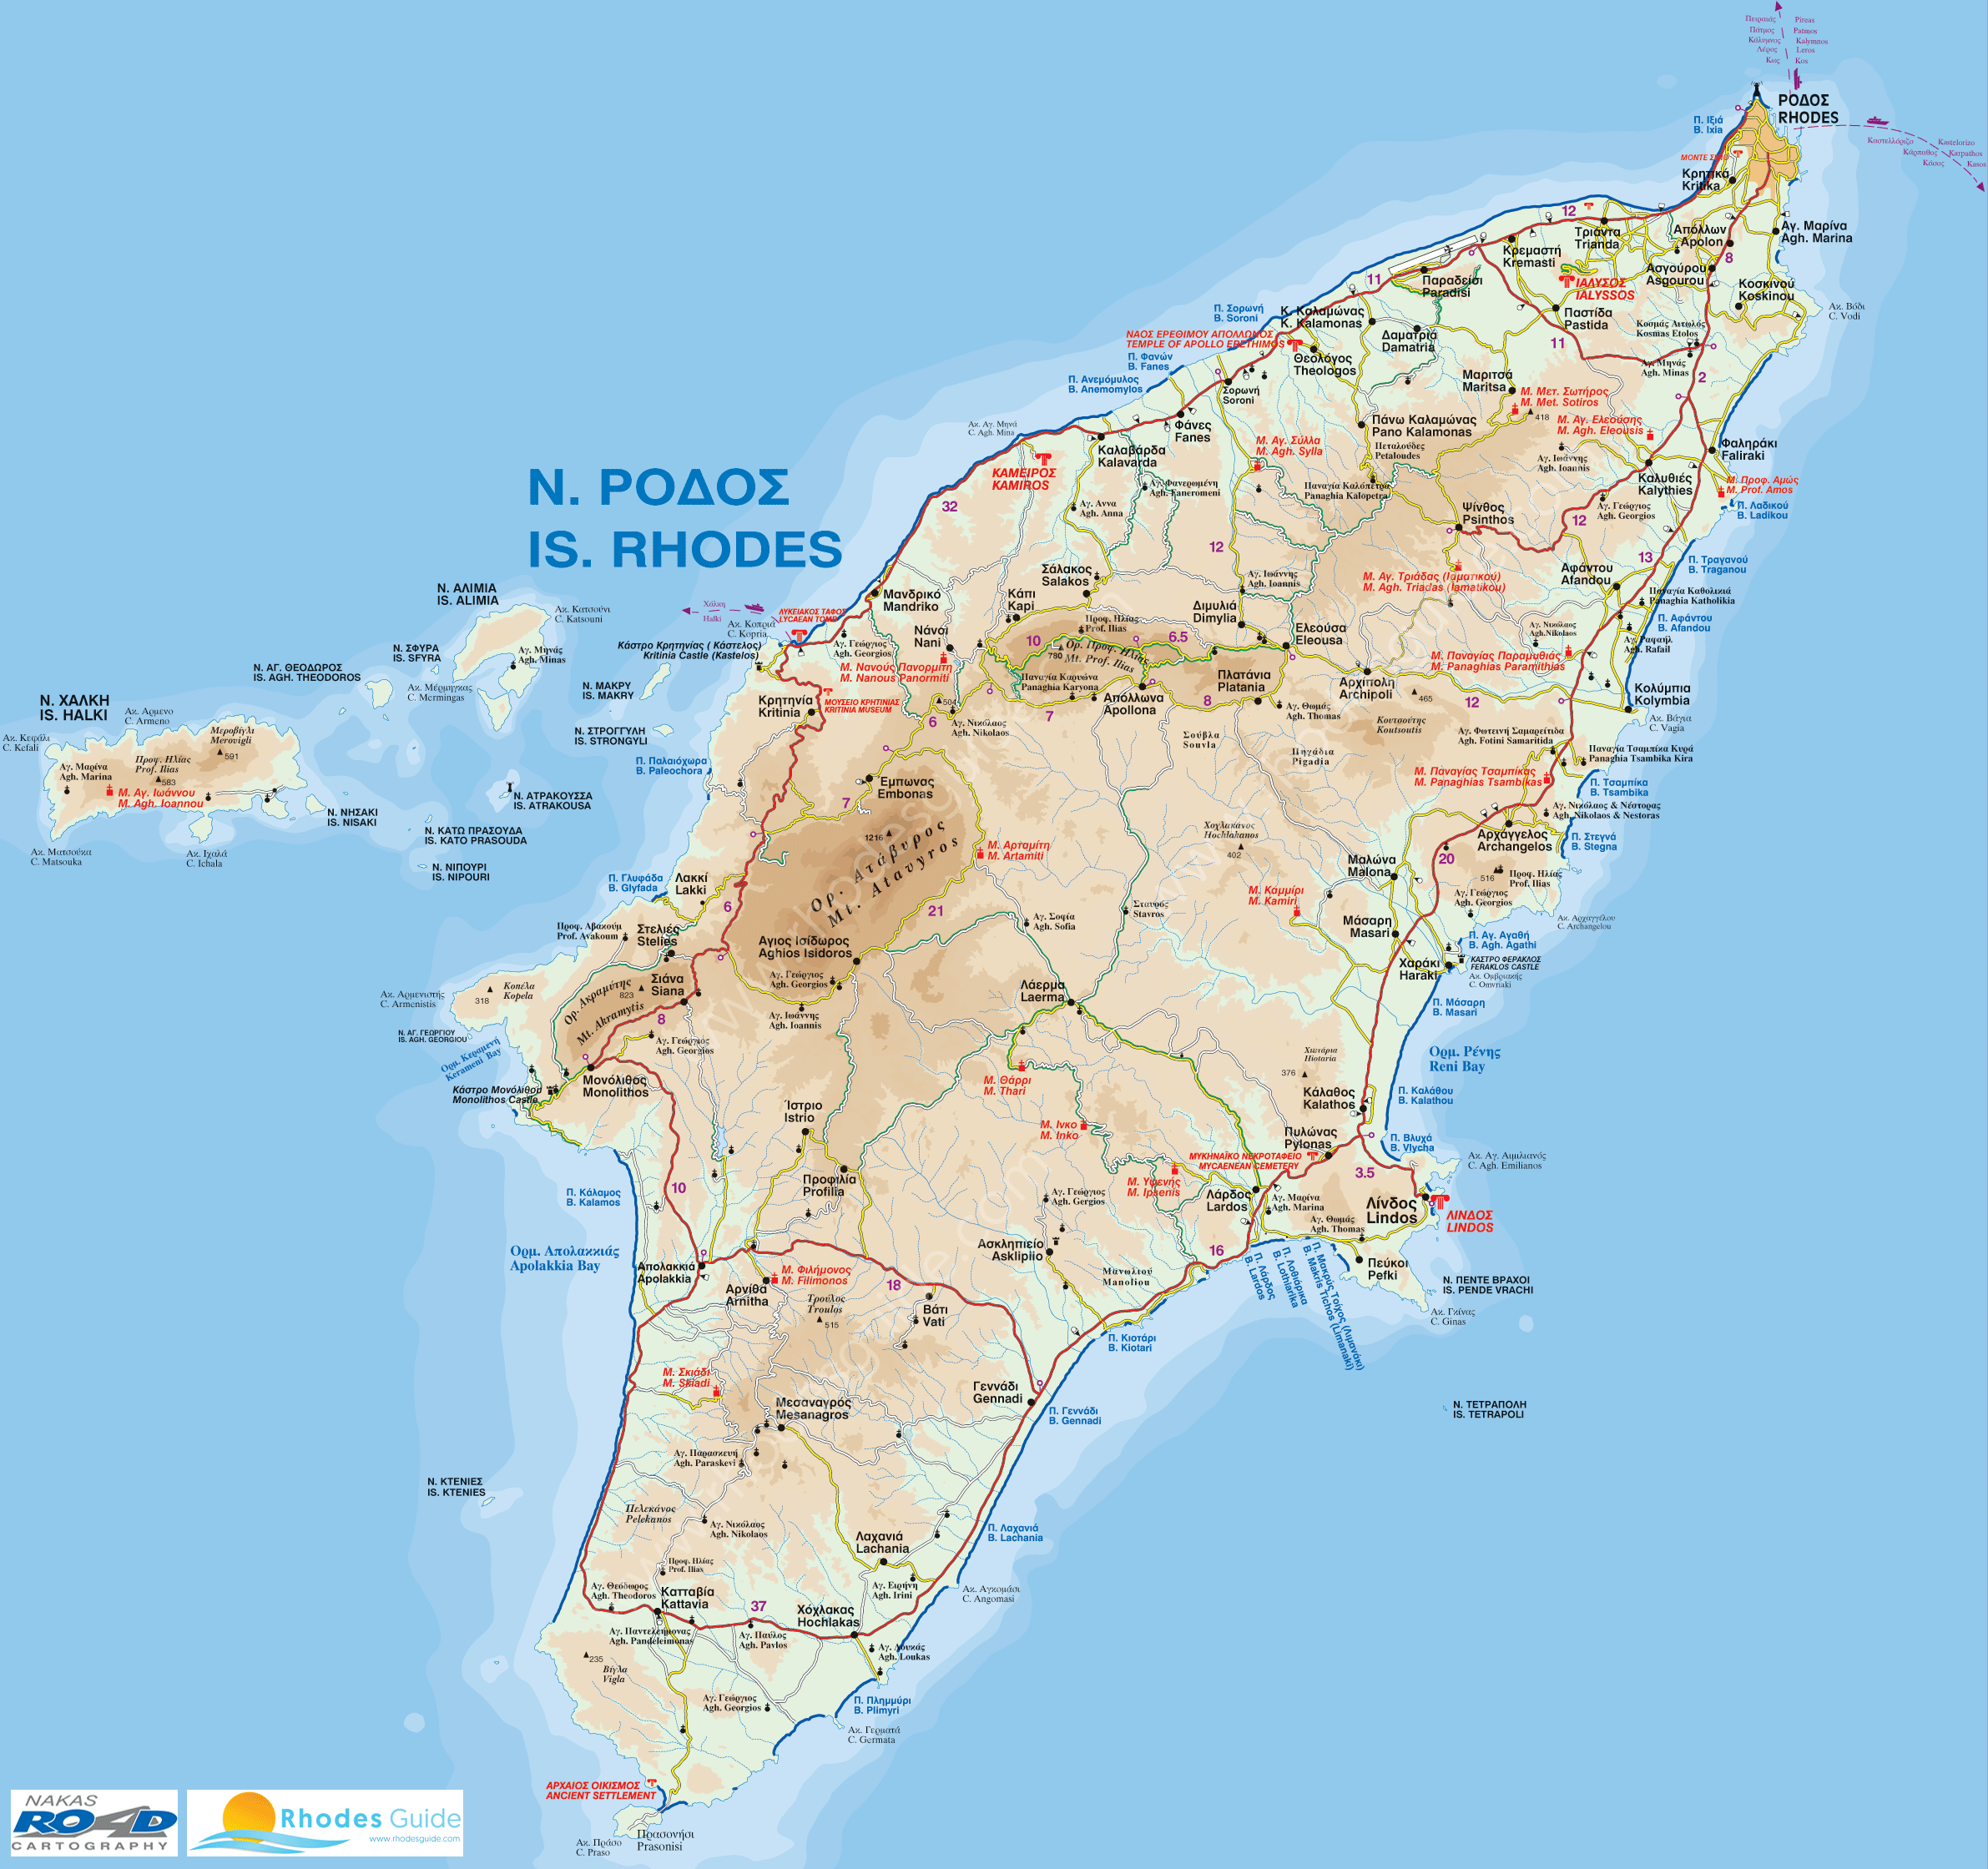 map of rhodes greece island Map Of Rhodes Island Greece Rhodesguide Com map of rhodes greece island